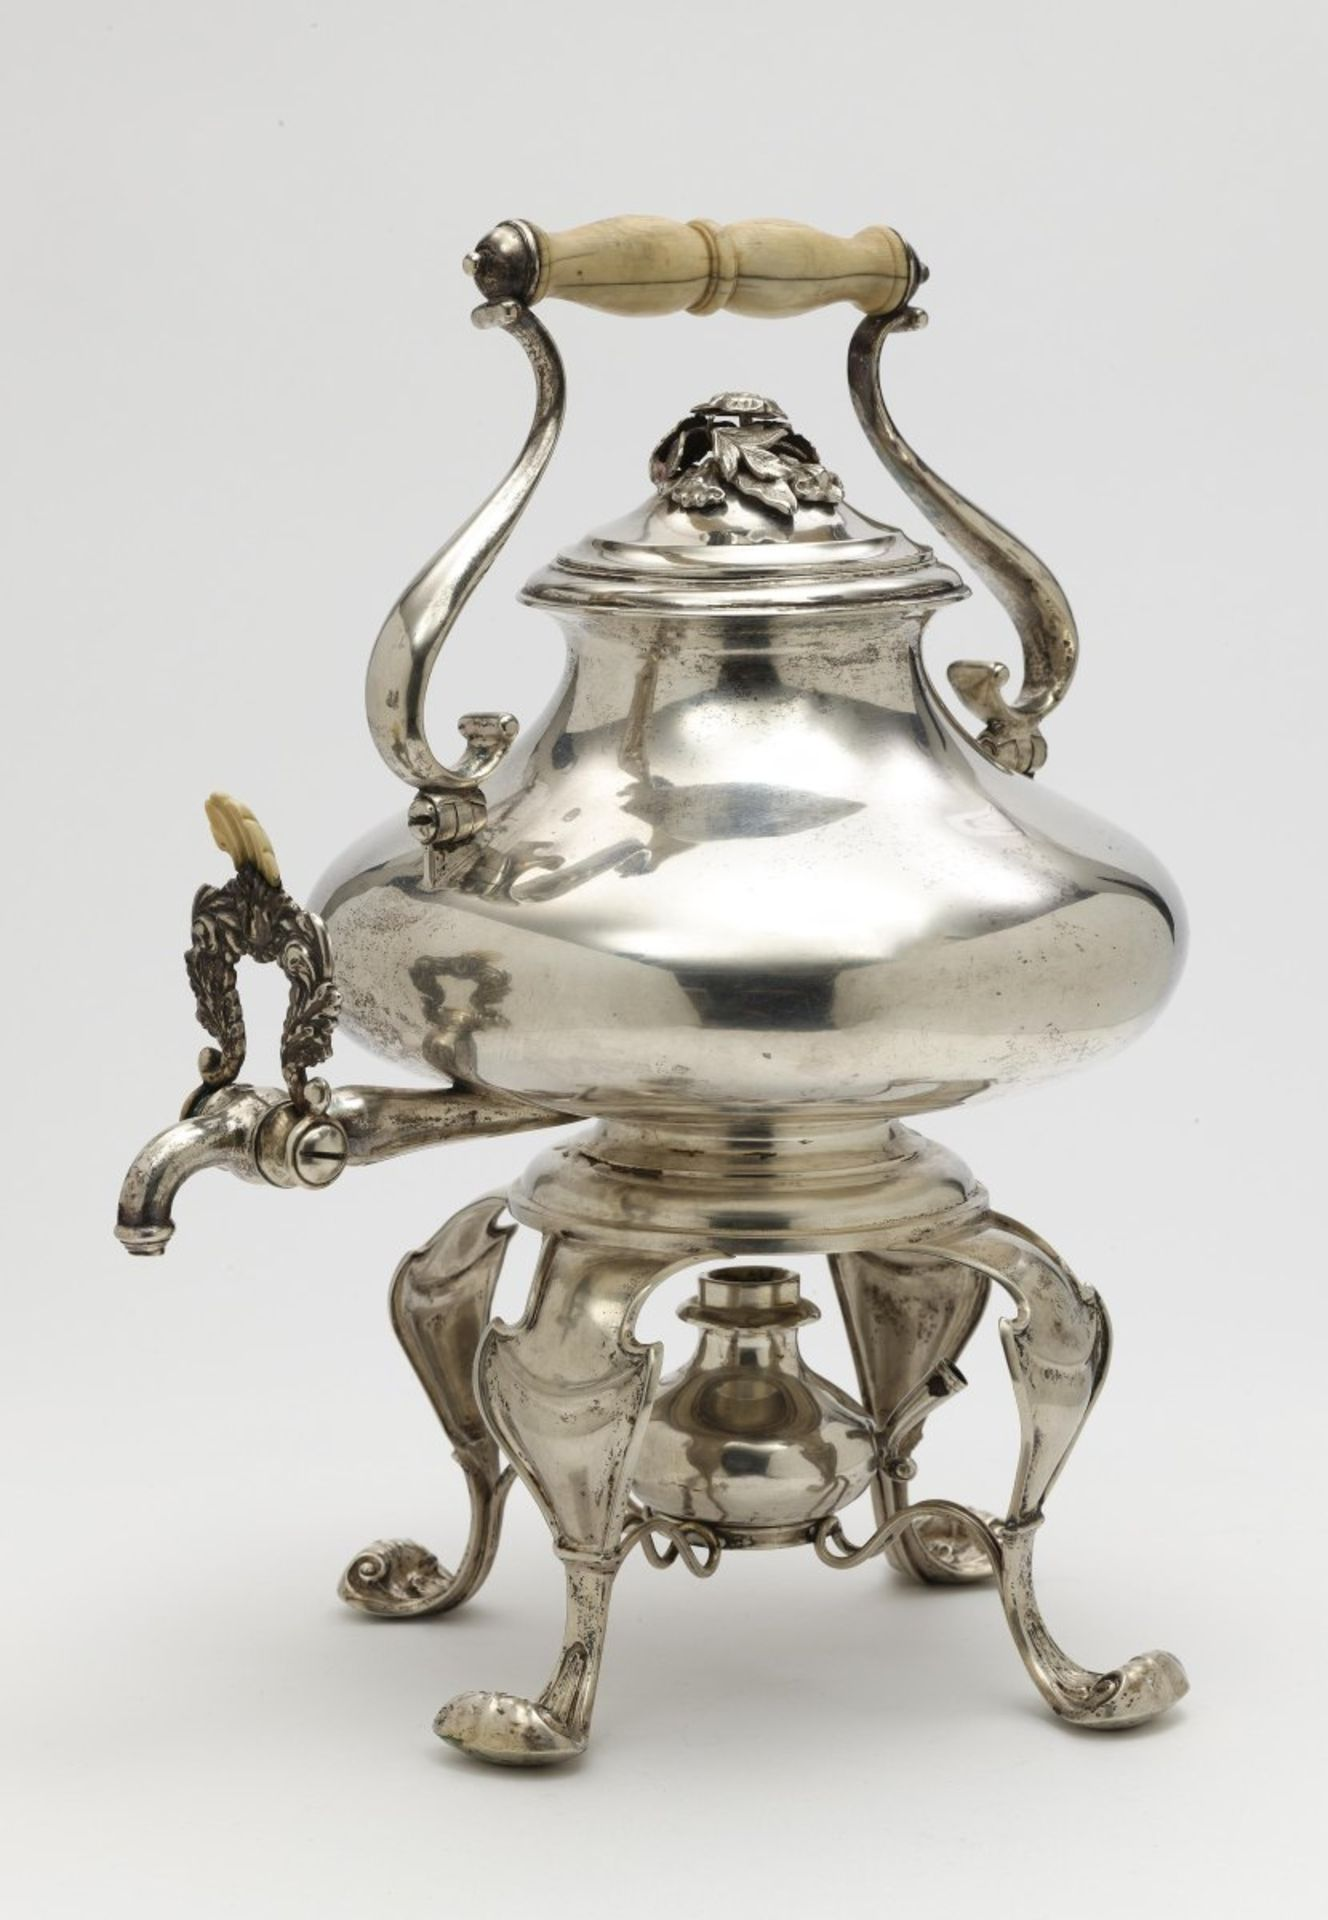 A kettle with réchaud